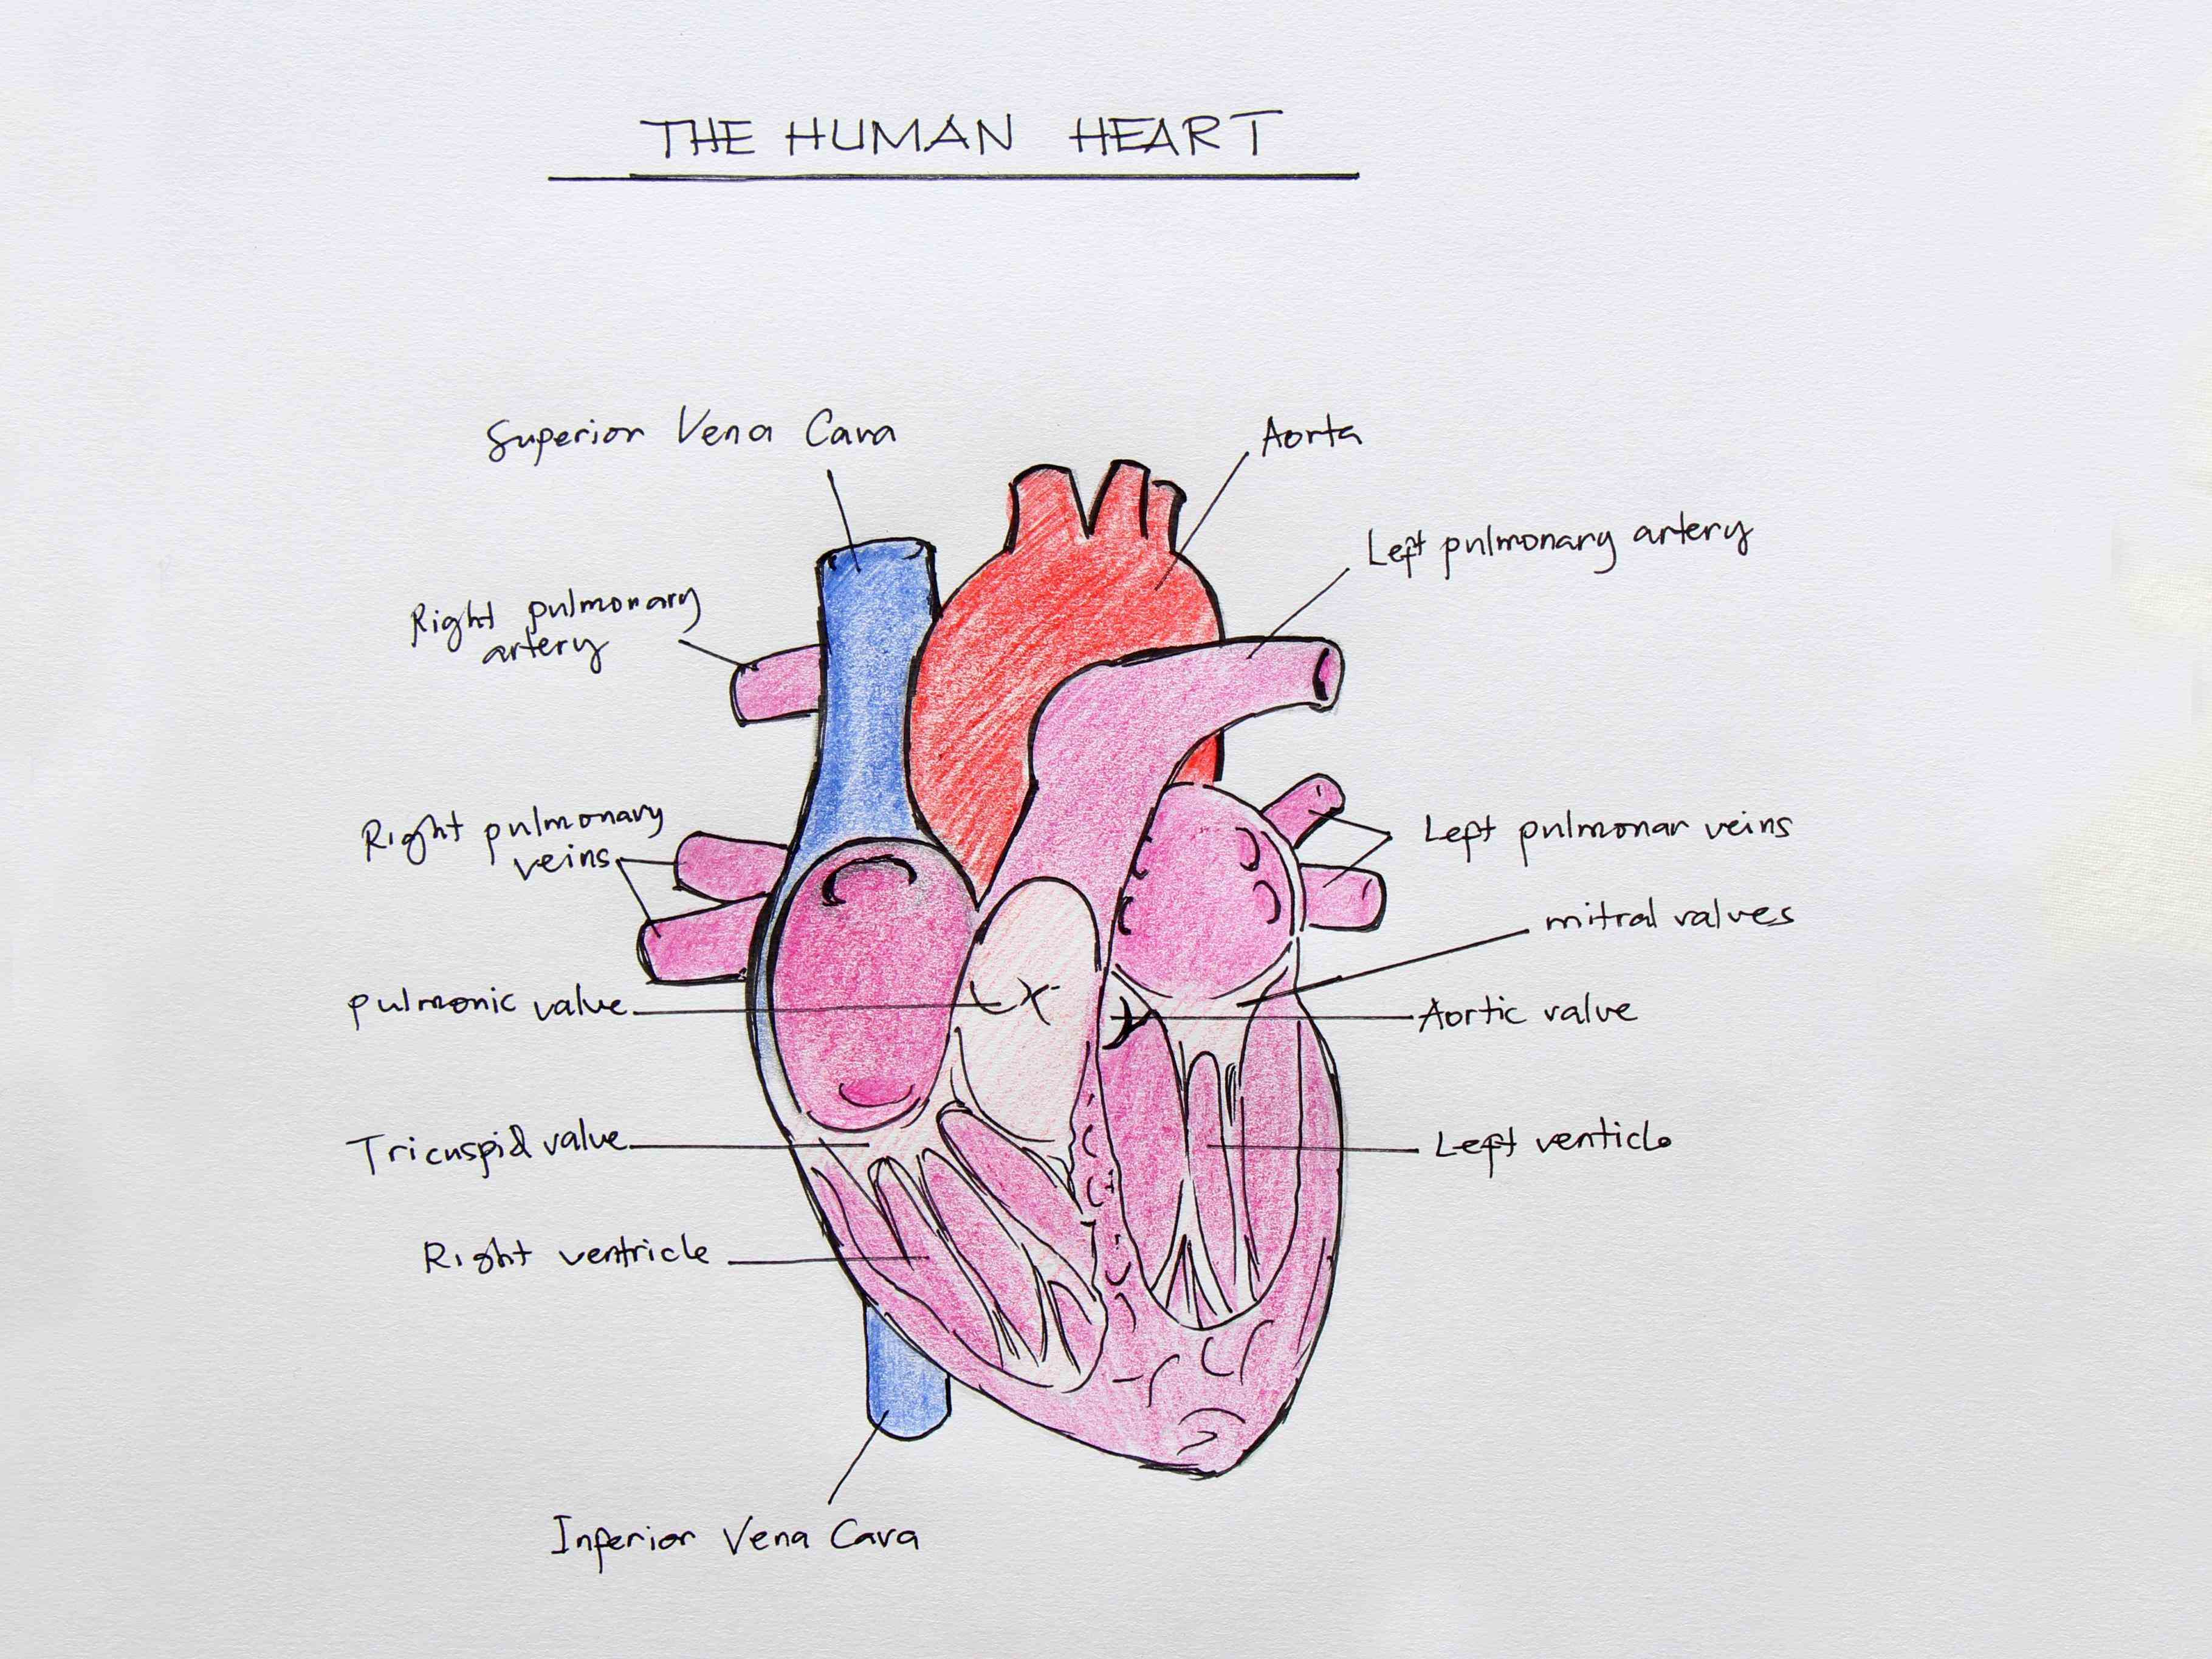 Heart Internal Structure Diagrams Pictures Wallpapers